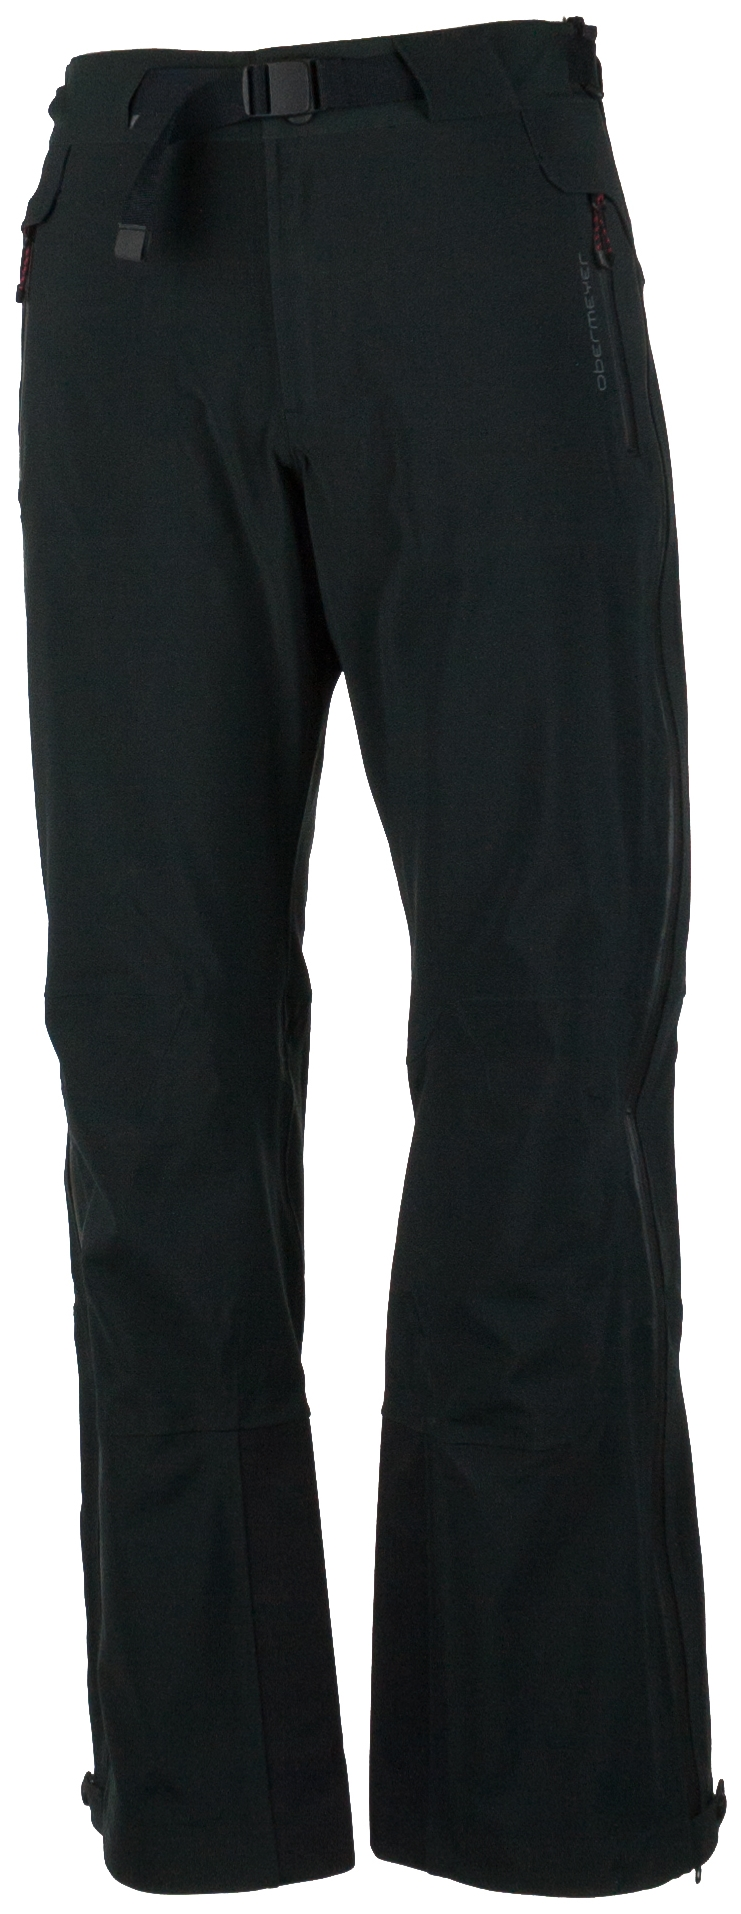 Obermeyer Peak Shell Pants, $270